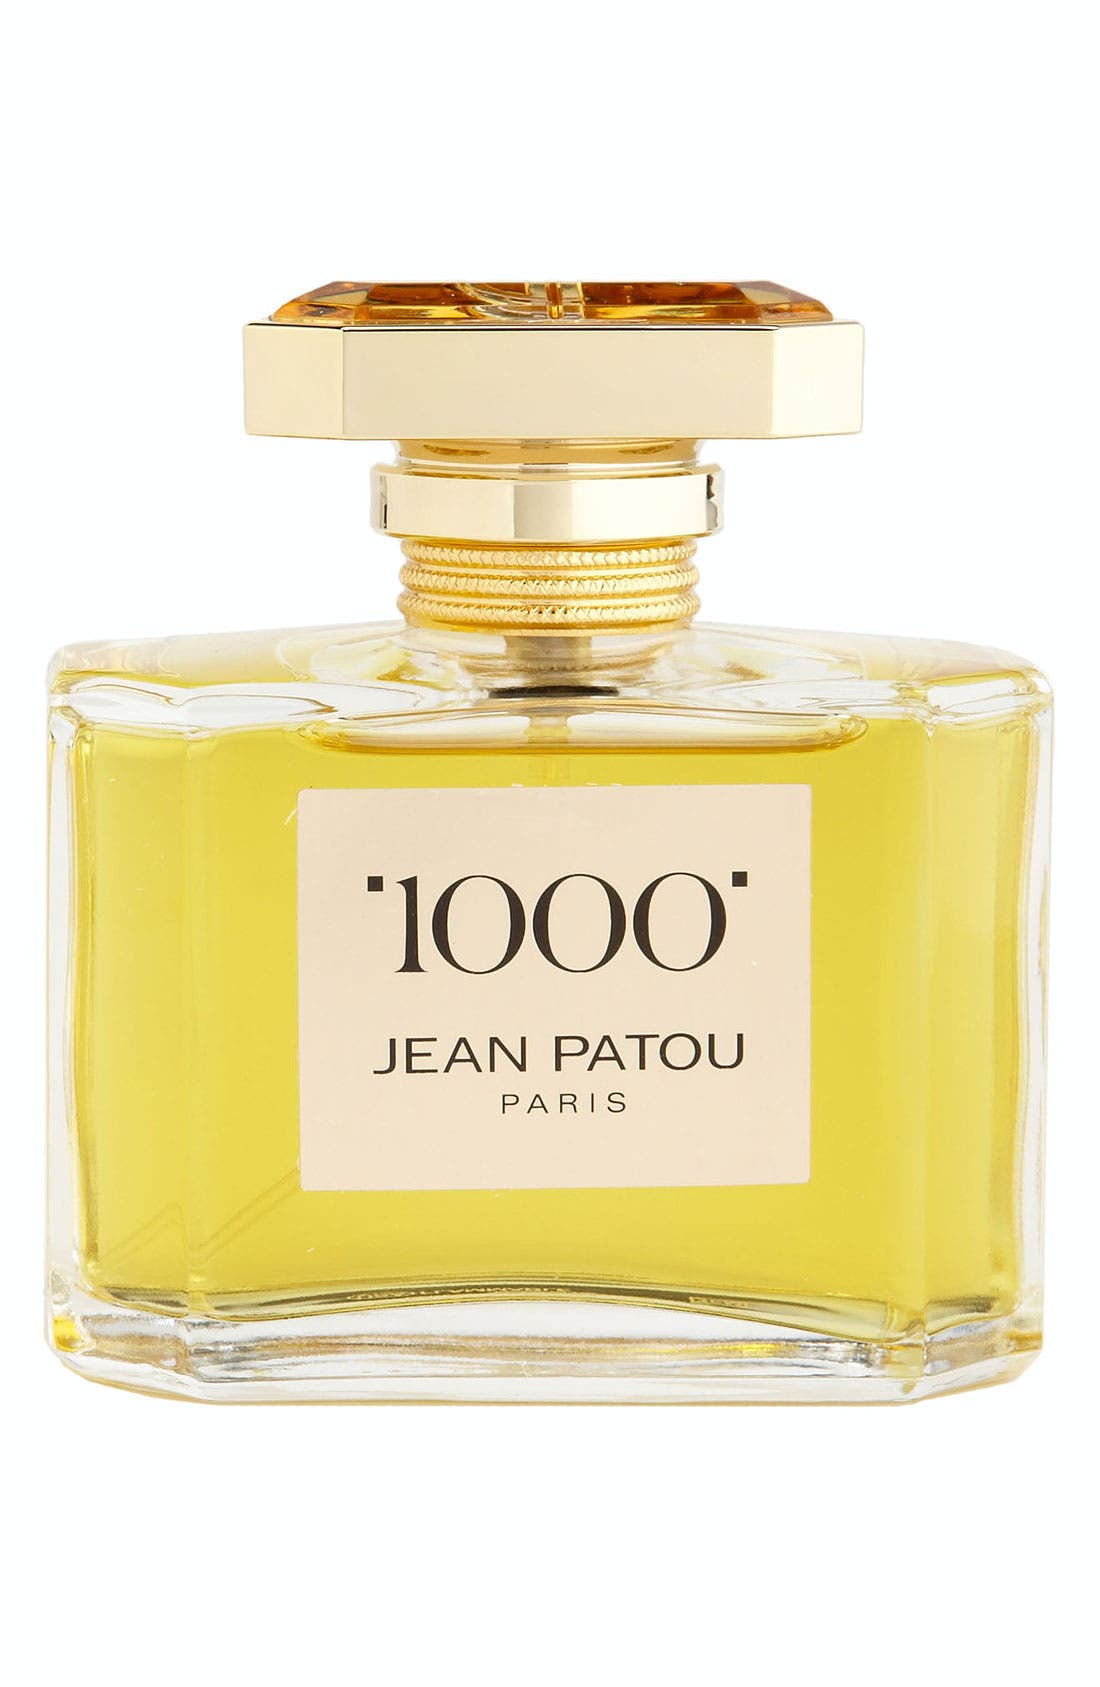 JEAN PATOU,                             1000 by Jean Patou Eau de Parfum Jewel Spray,                             Main thumbnail 1, color,                             NO COLOR